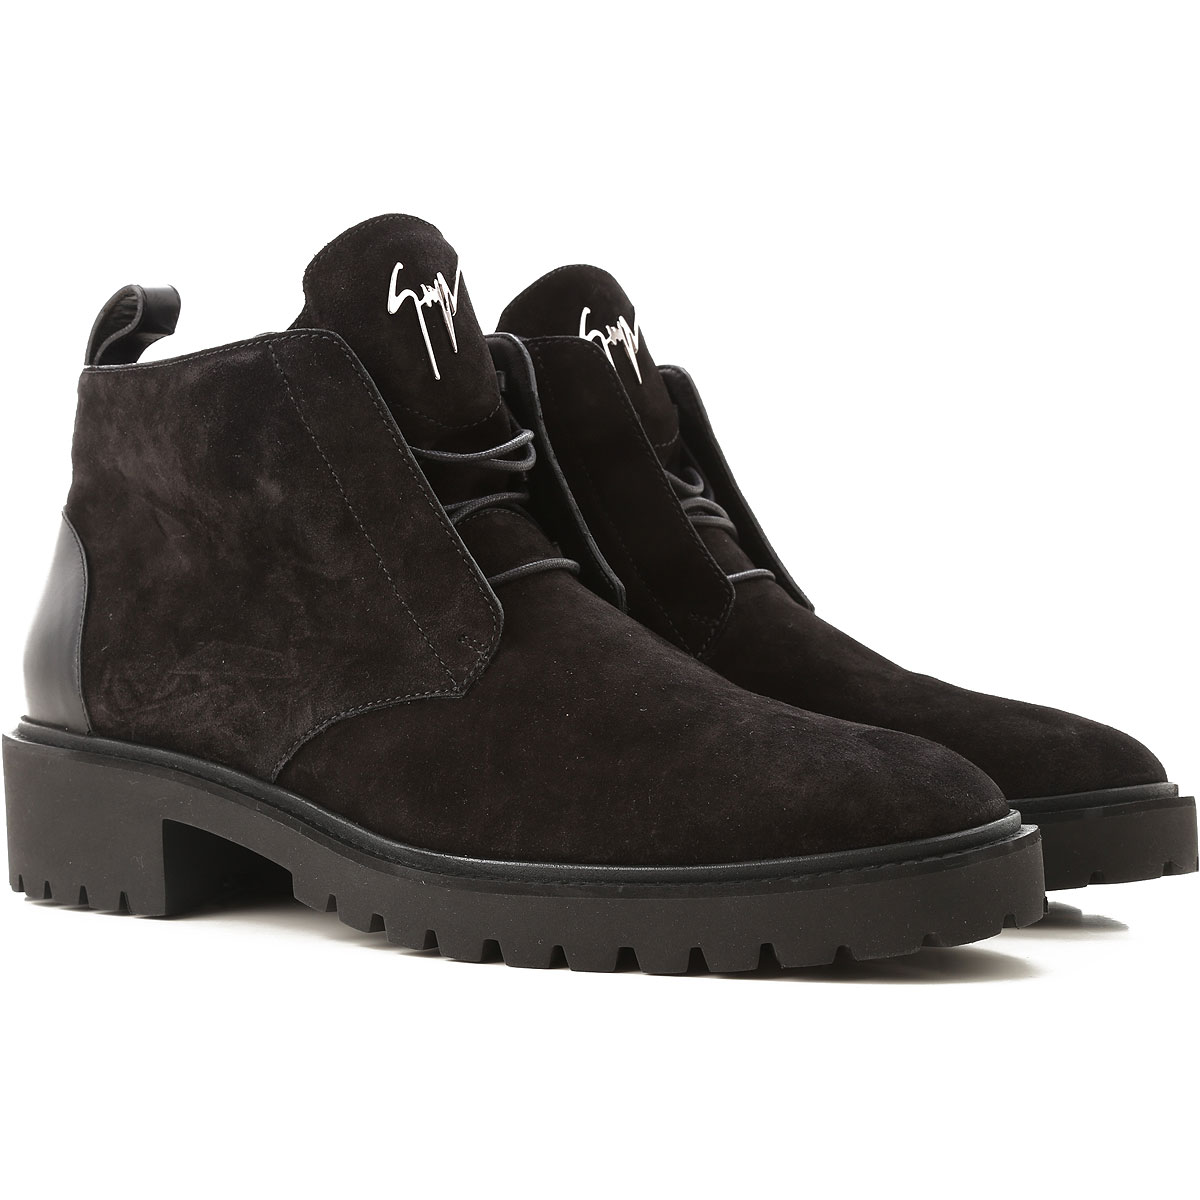 Image of Giuseppe Zanotti Design Boots for Men, Booties, Black, Suede leather, 2017, 10 10.5 7.5 8 9